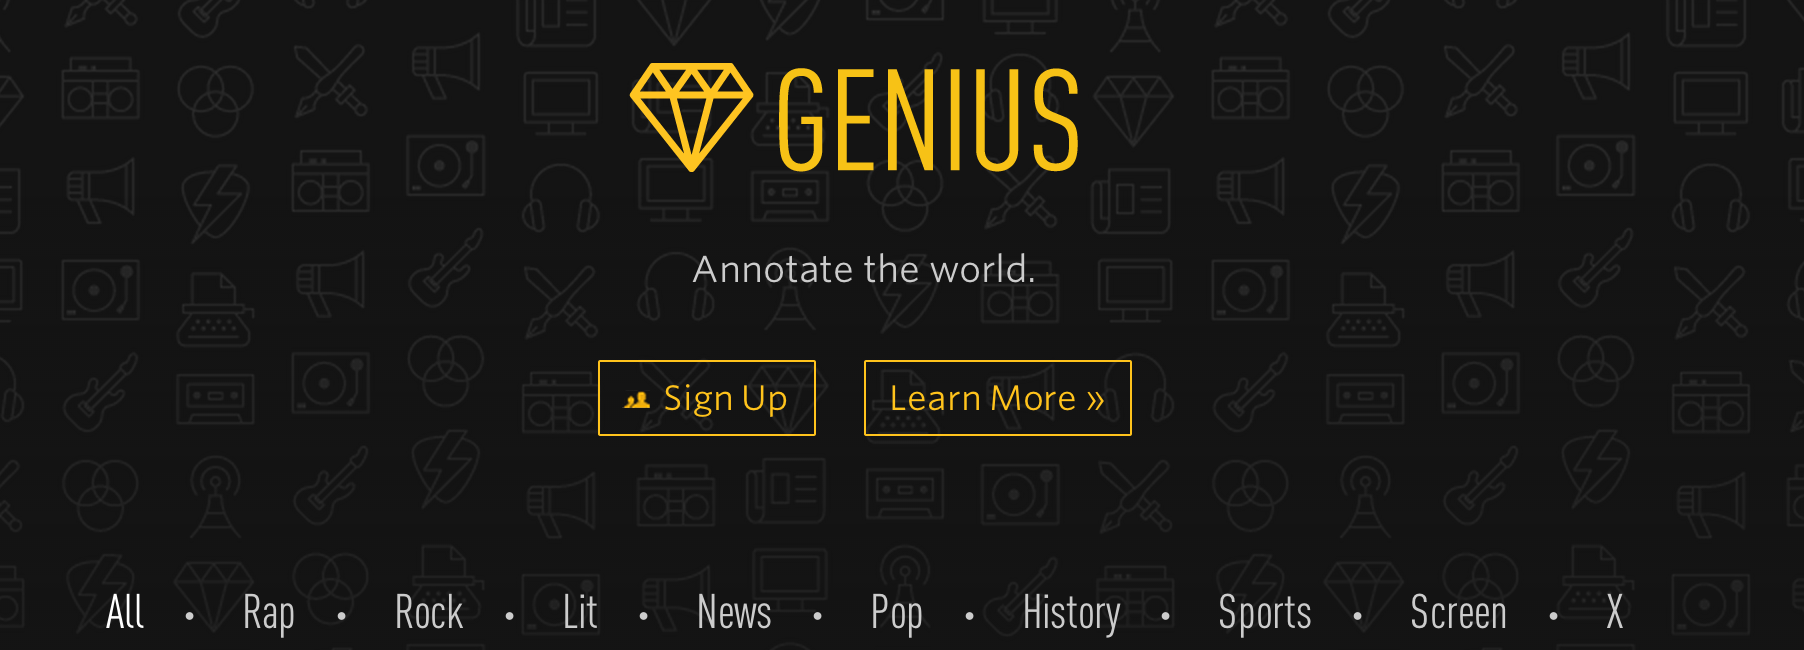 Rap Genius Rebrands as Genius to Become a Full-On Annotation Platform